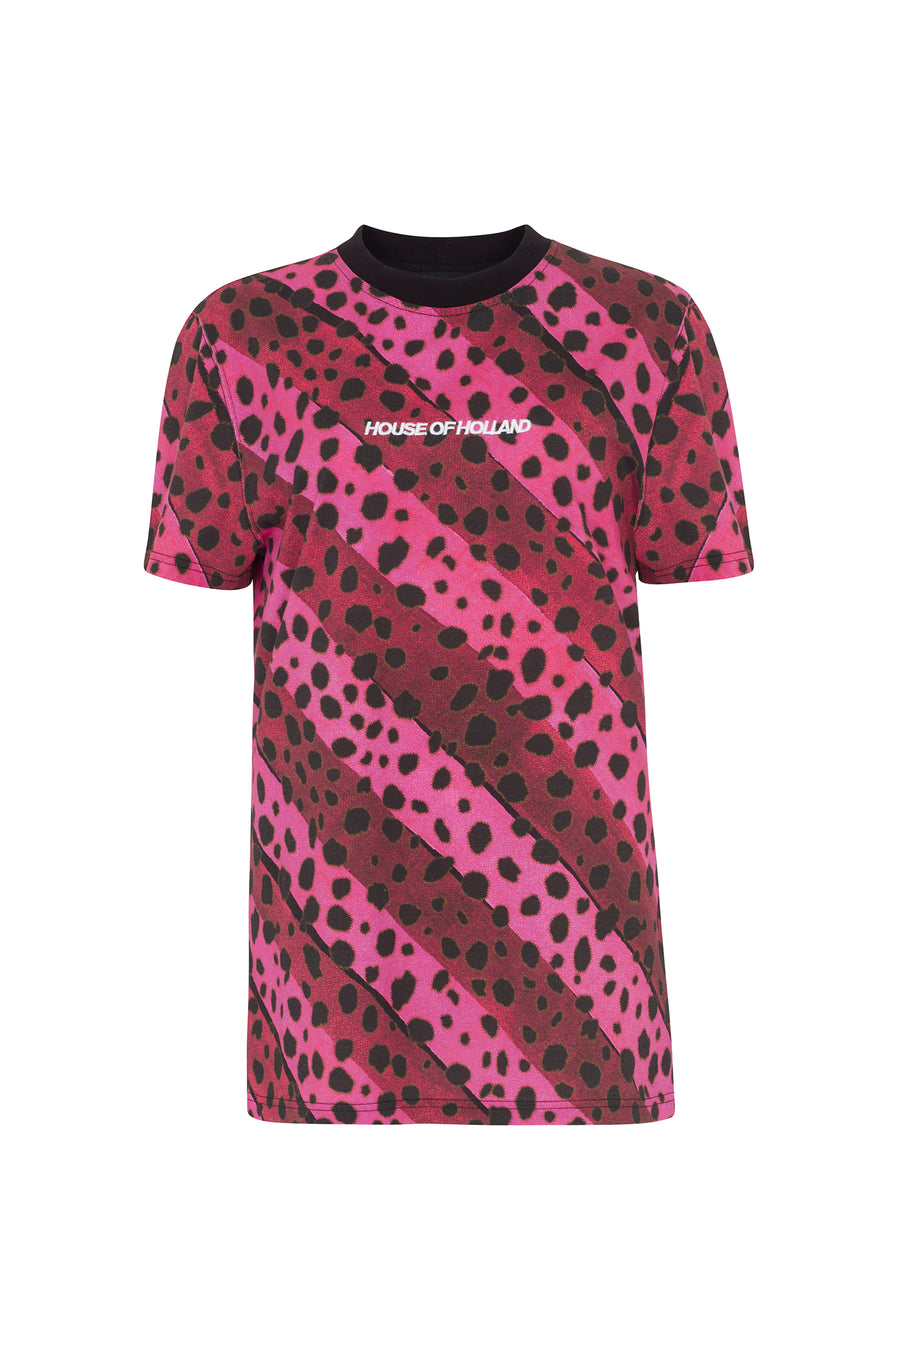 Stripe Cheetah Tee